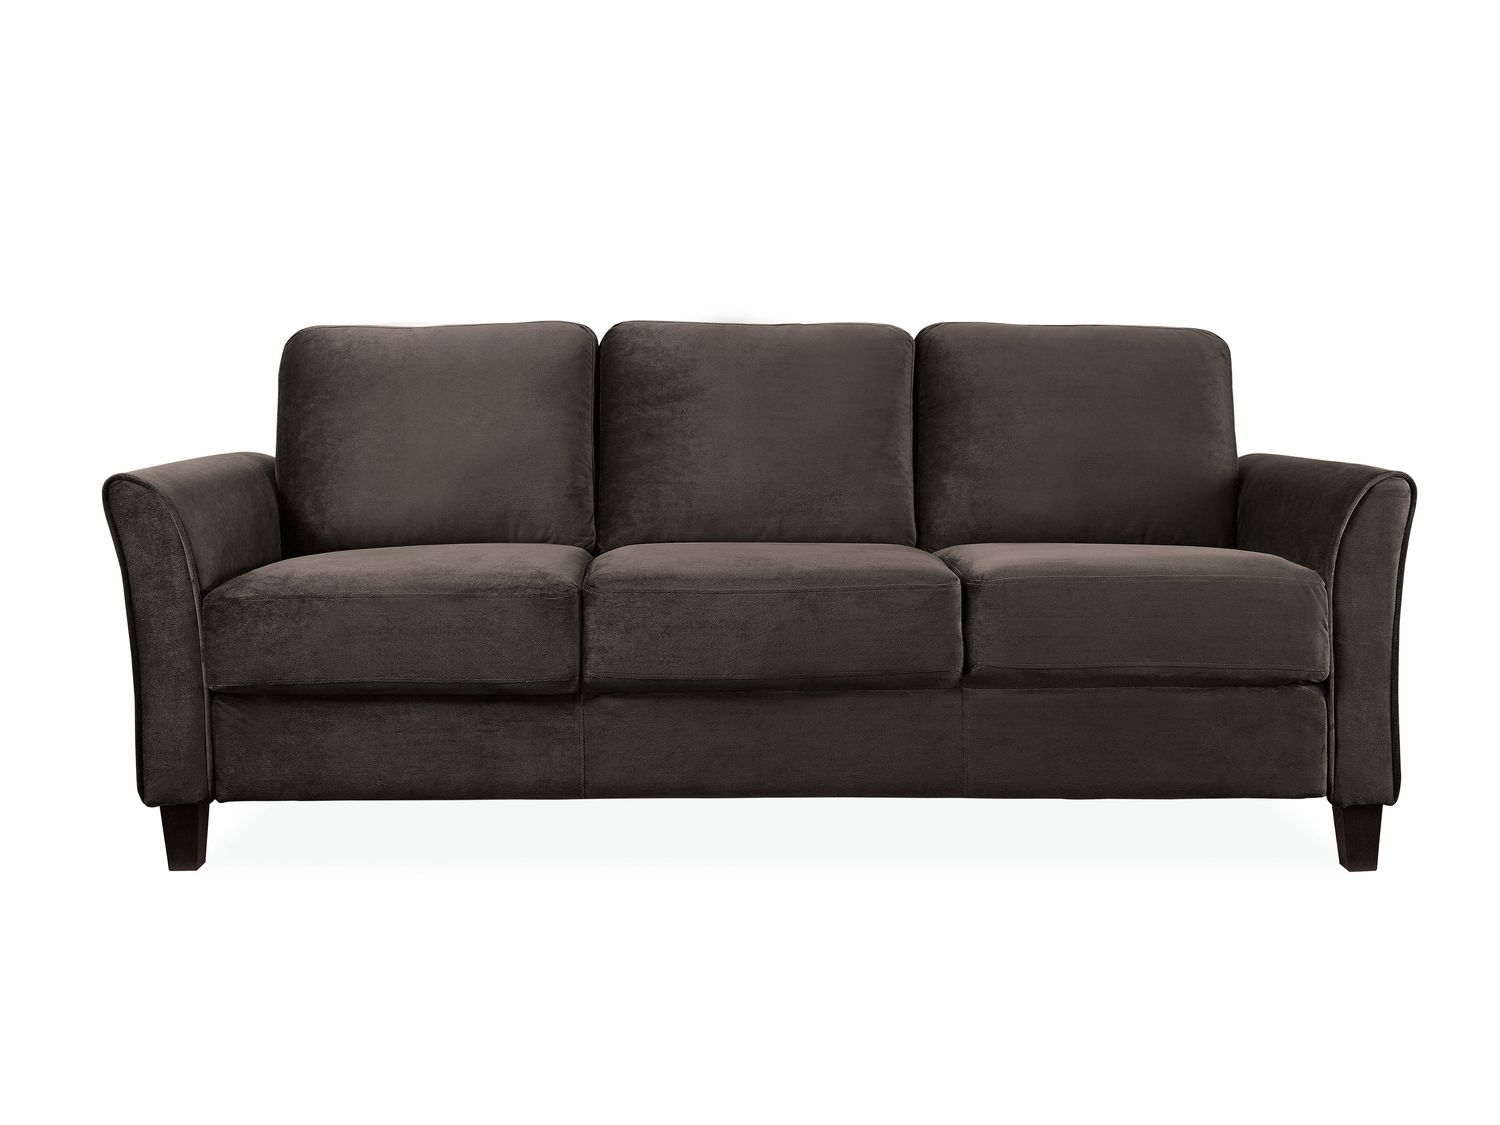 with sofa chaise lounge double sectional great room living